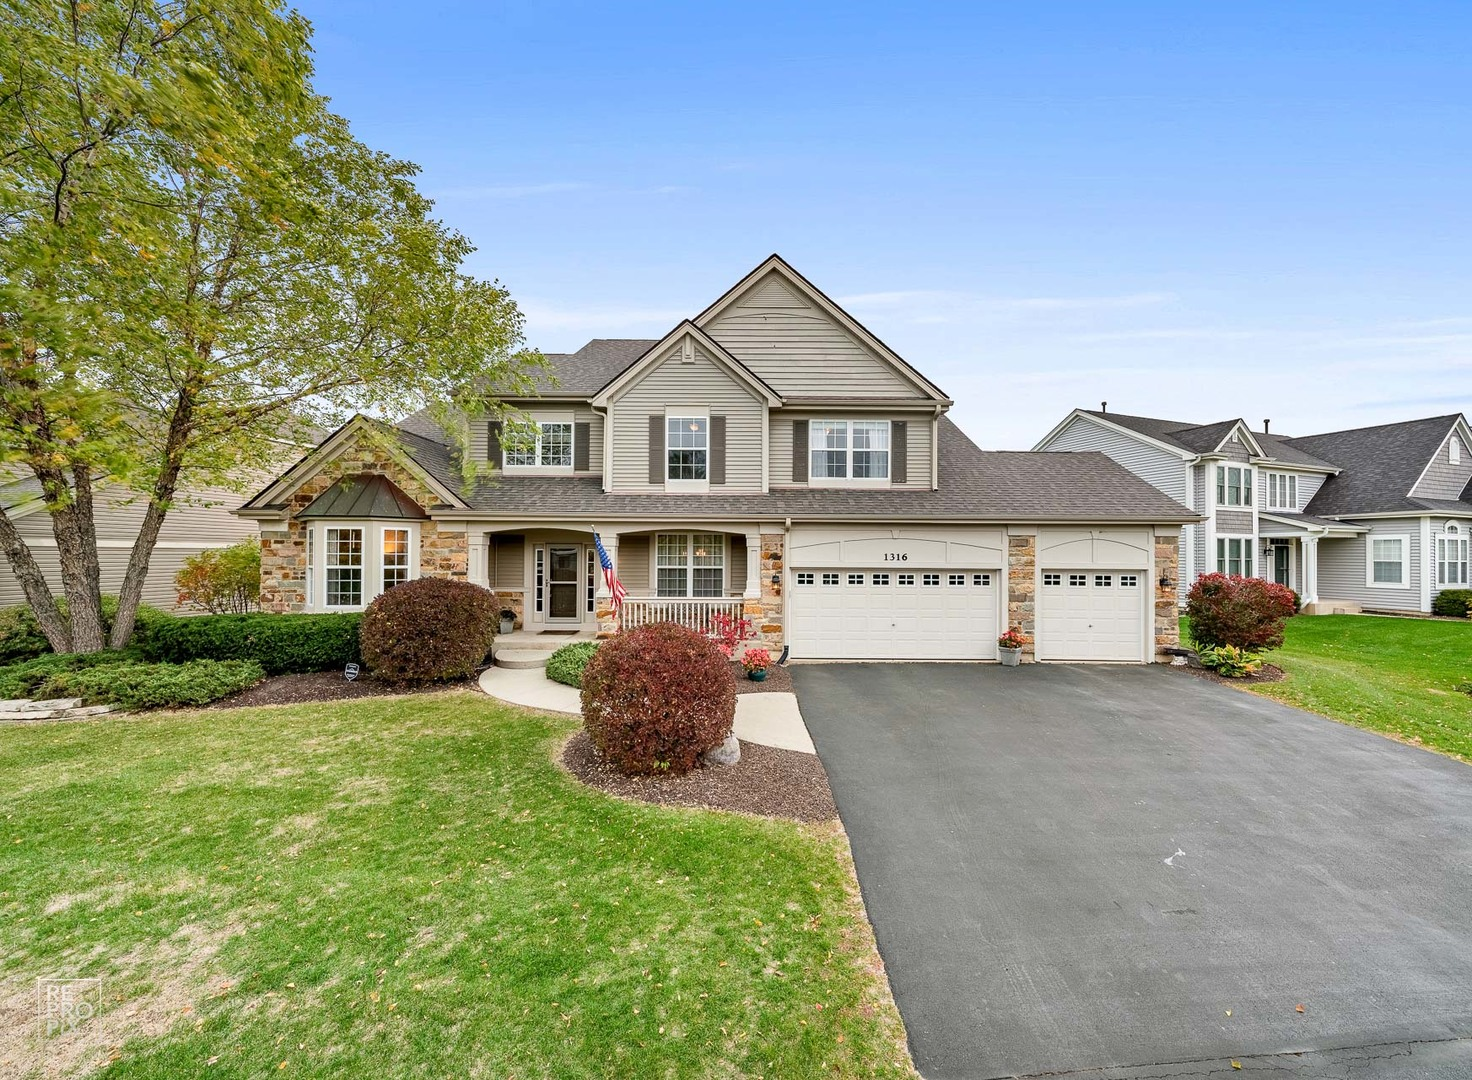 Photo for 1316 Mulberry Lane, Cary, IL 60013 (MLS # 10935830)